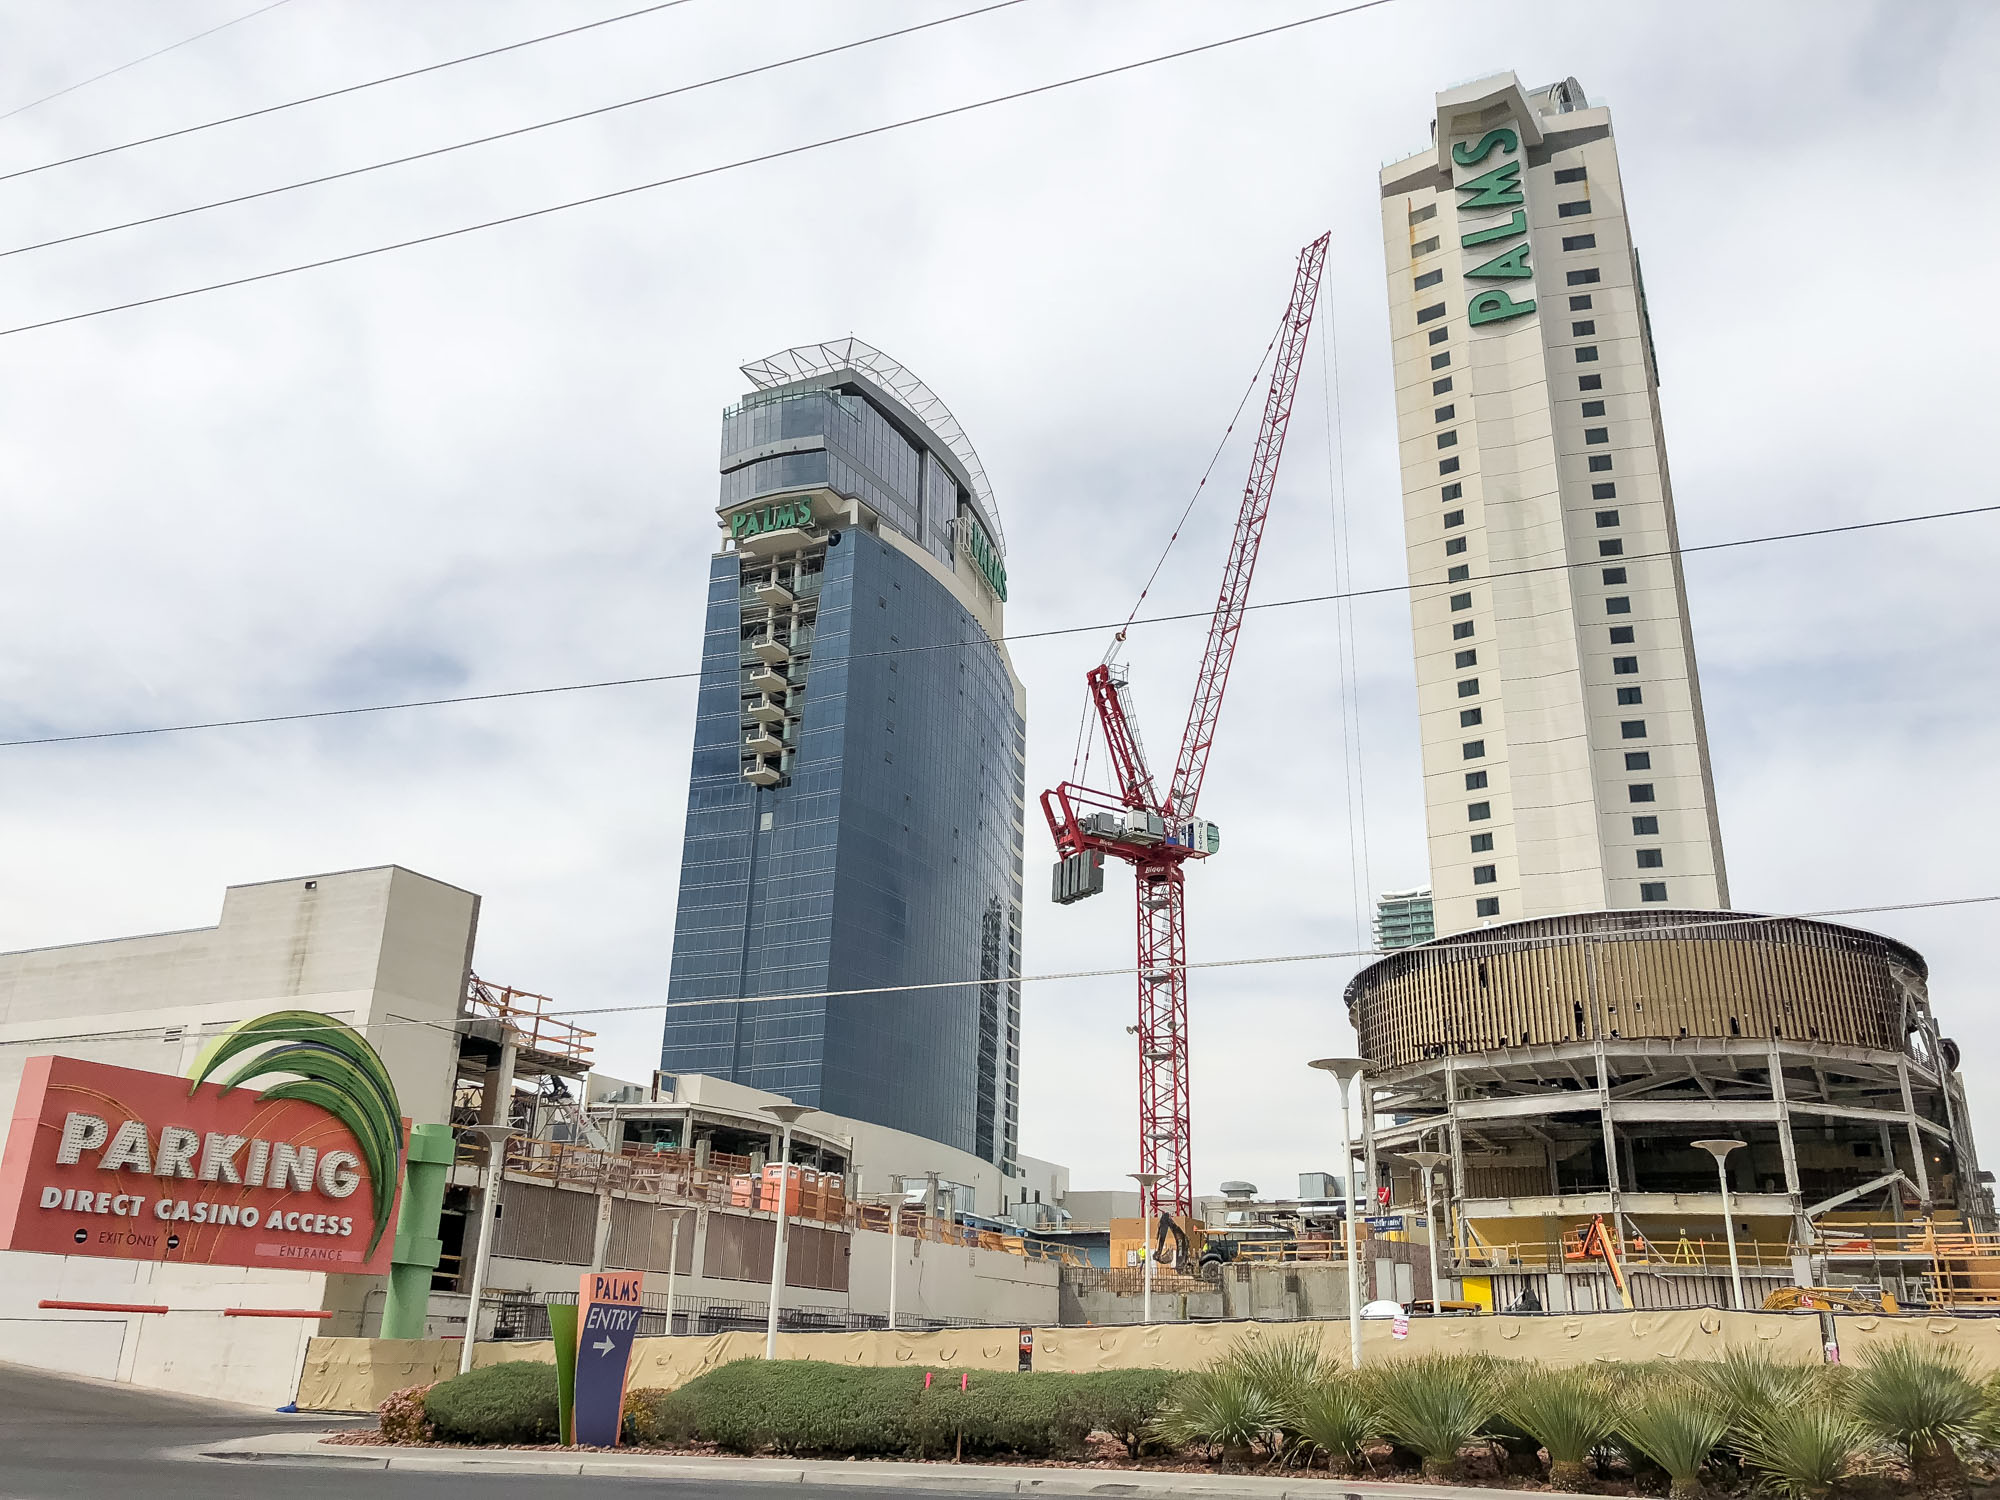 Construction at the Palms